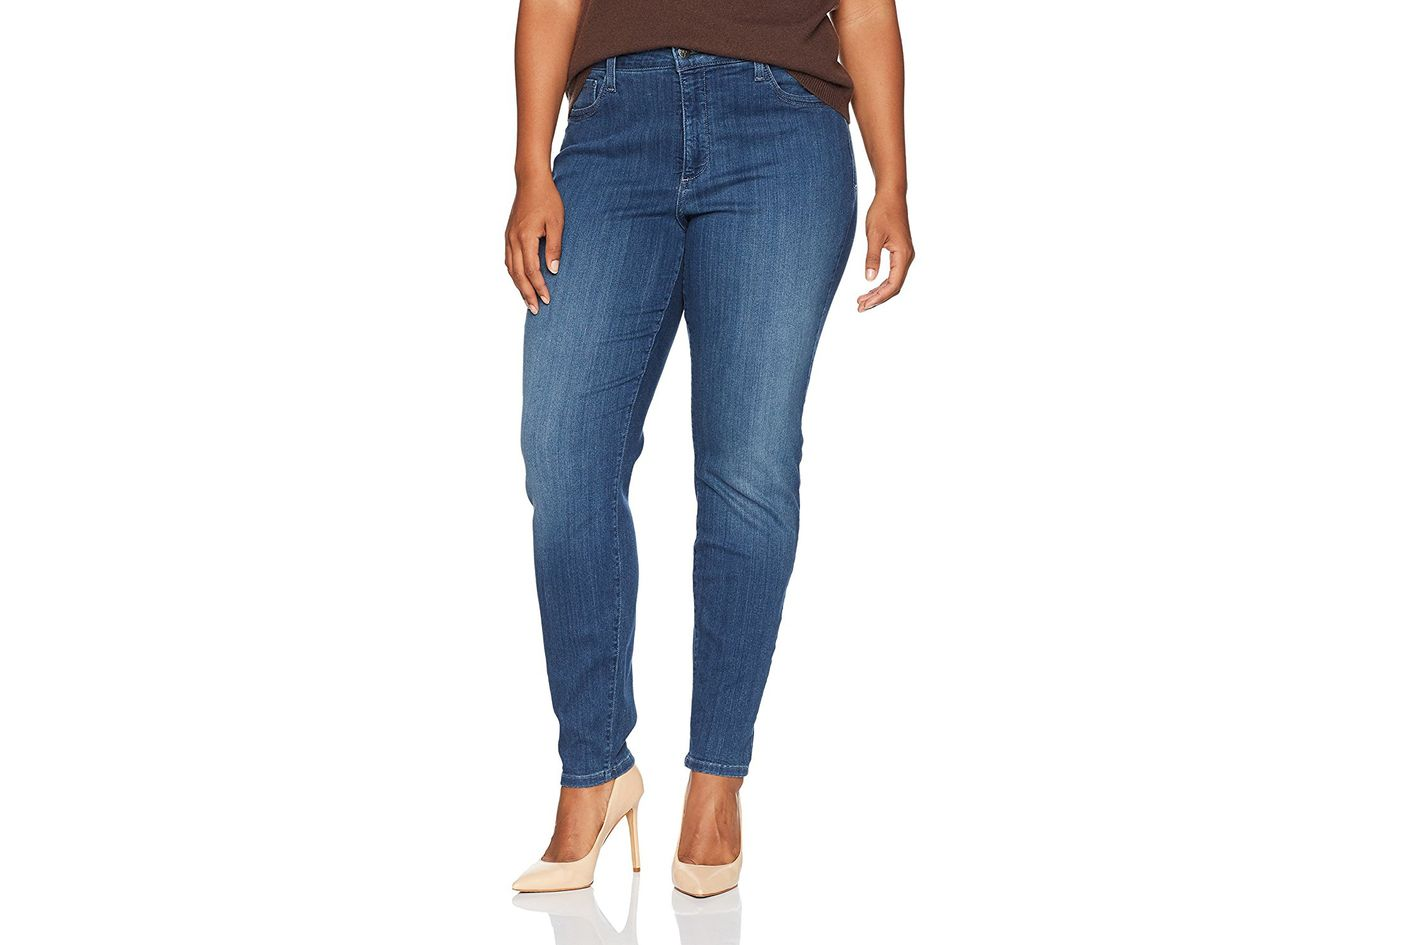 72bfac5e9ac 10 Best Plus-Size Jeans According to Real Women 2018